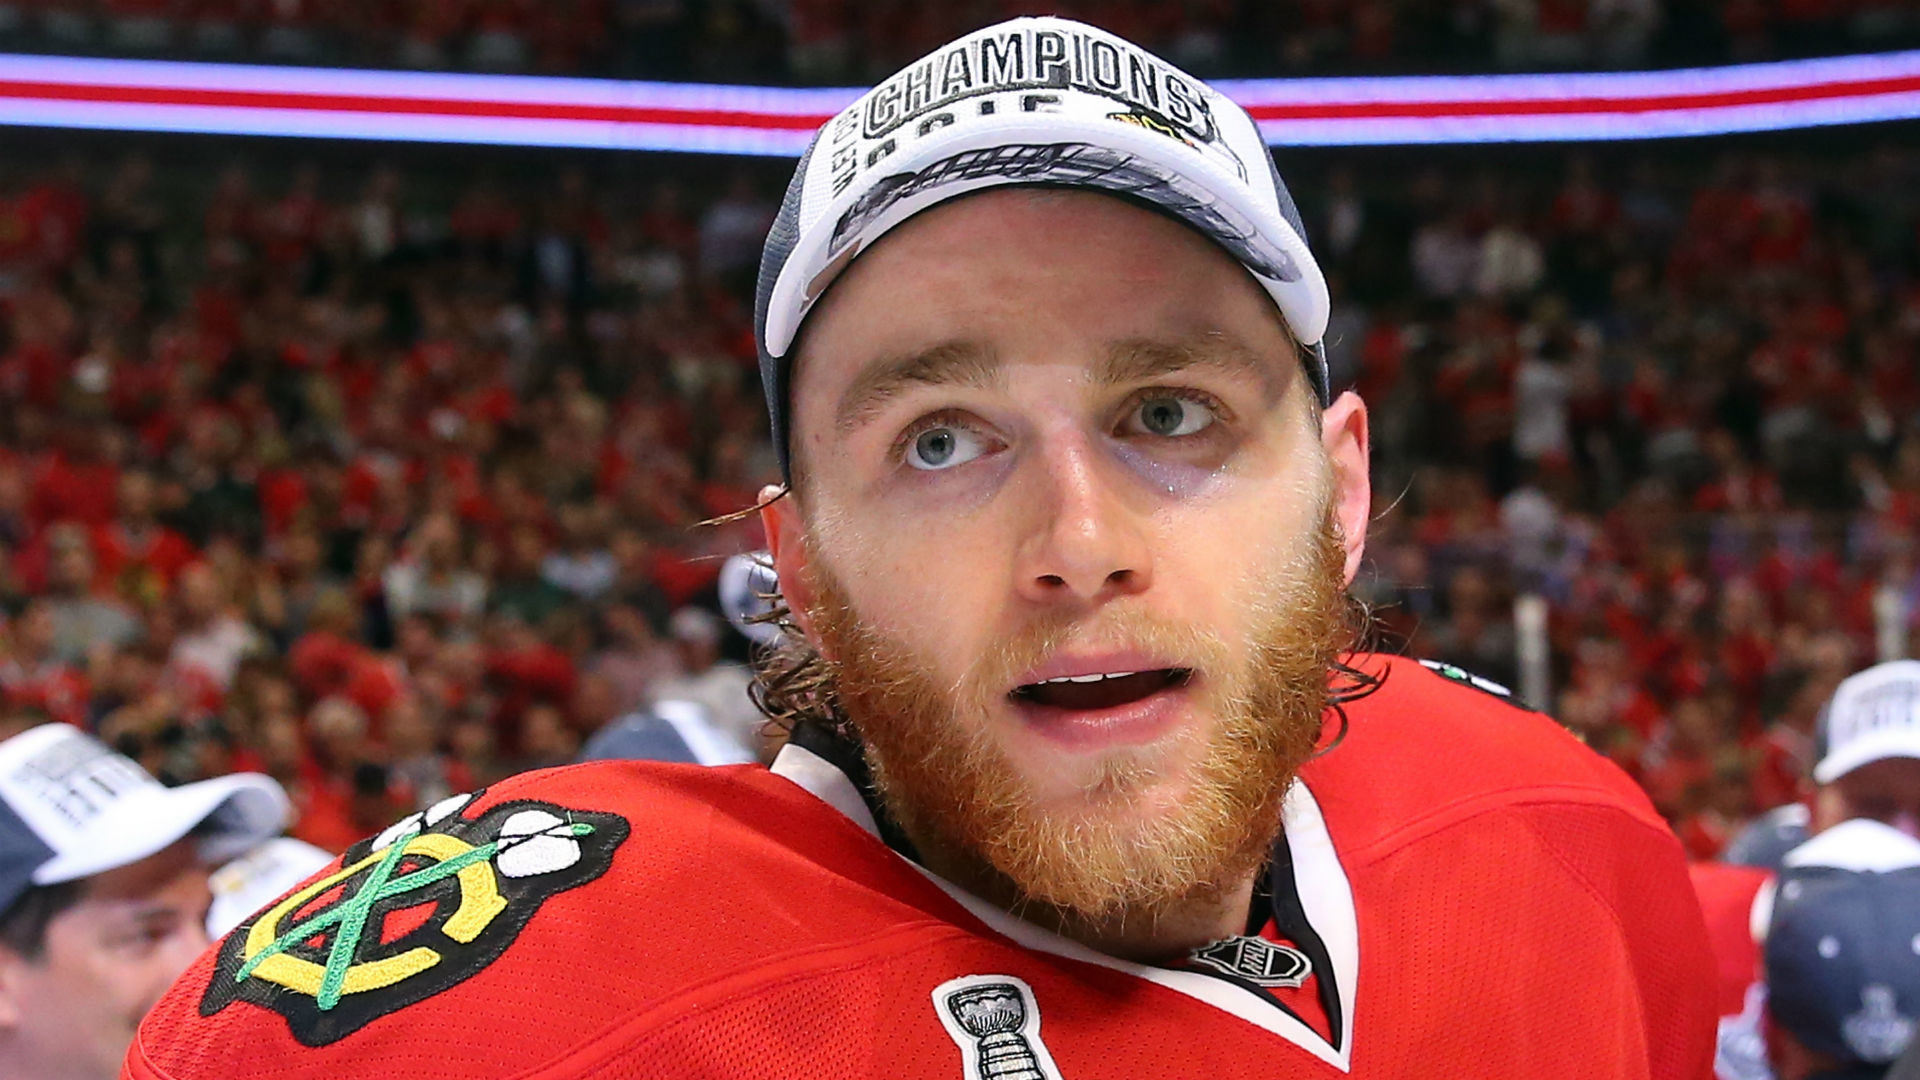 1920x1080 Police issue statement on Patrick Kane investigation | NHL | Sporting News